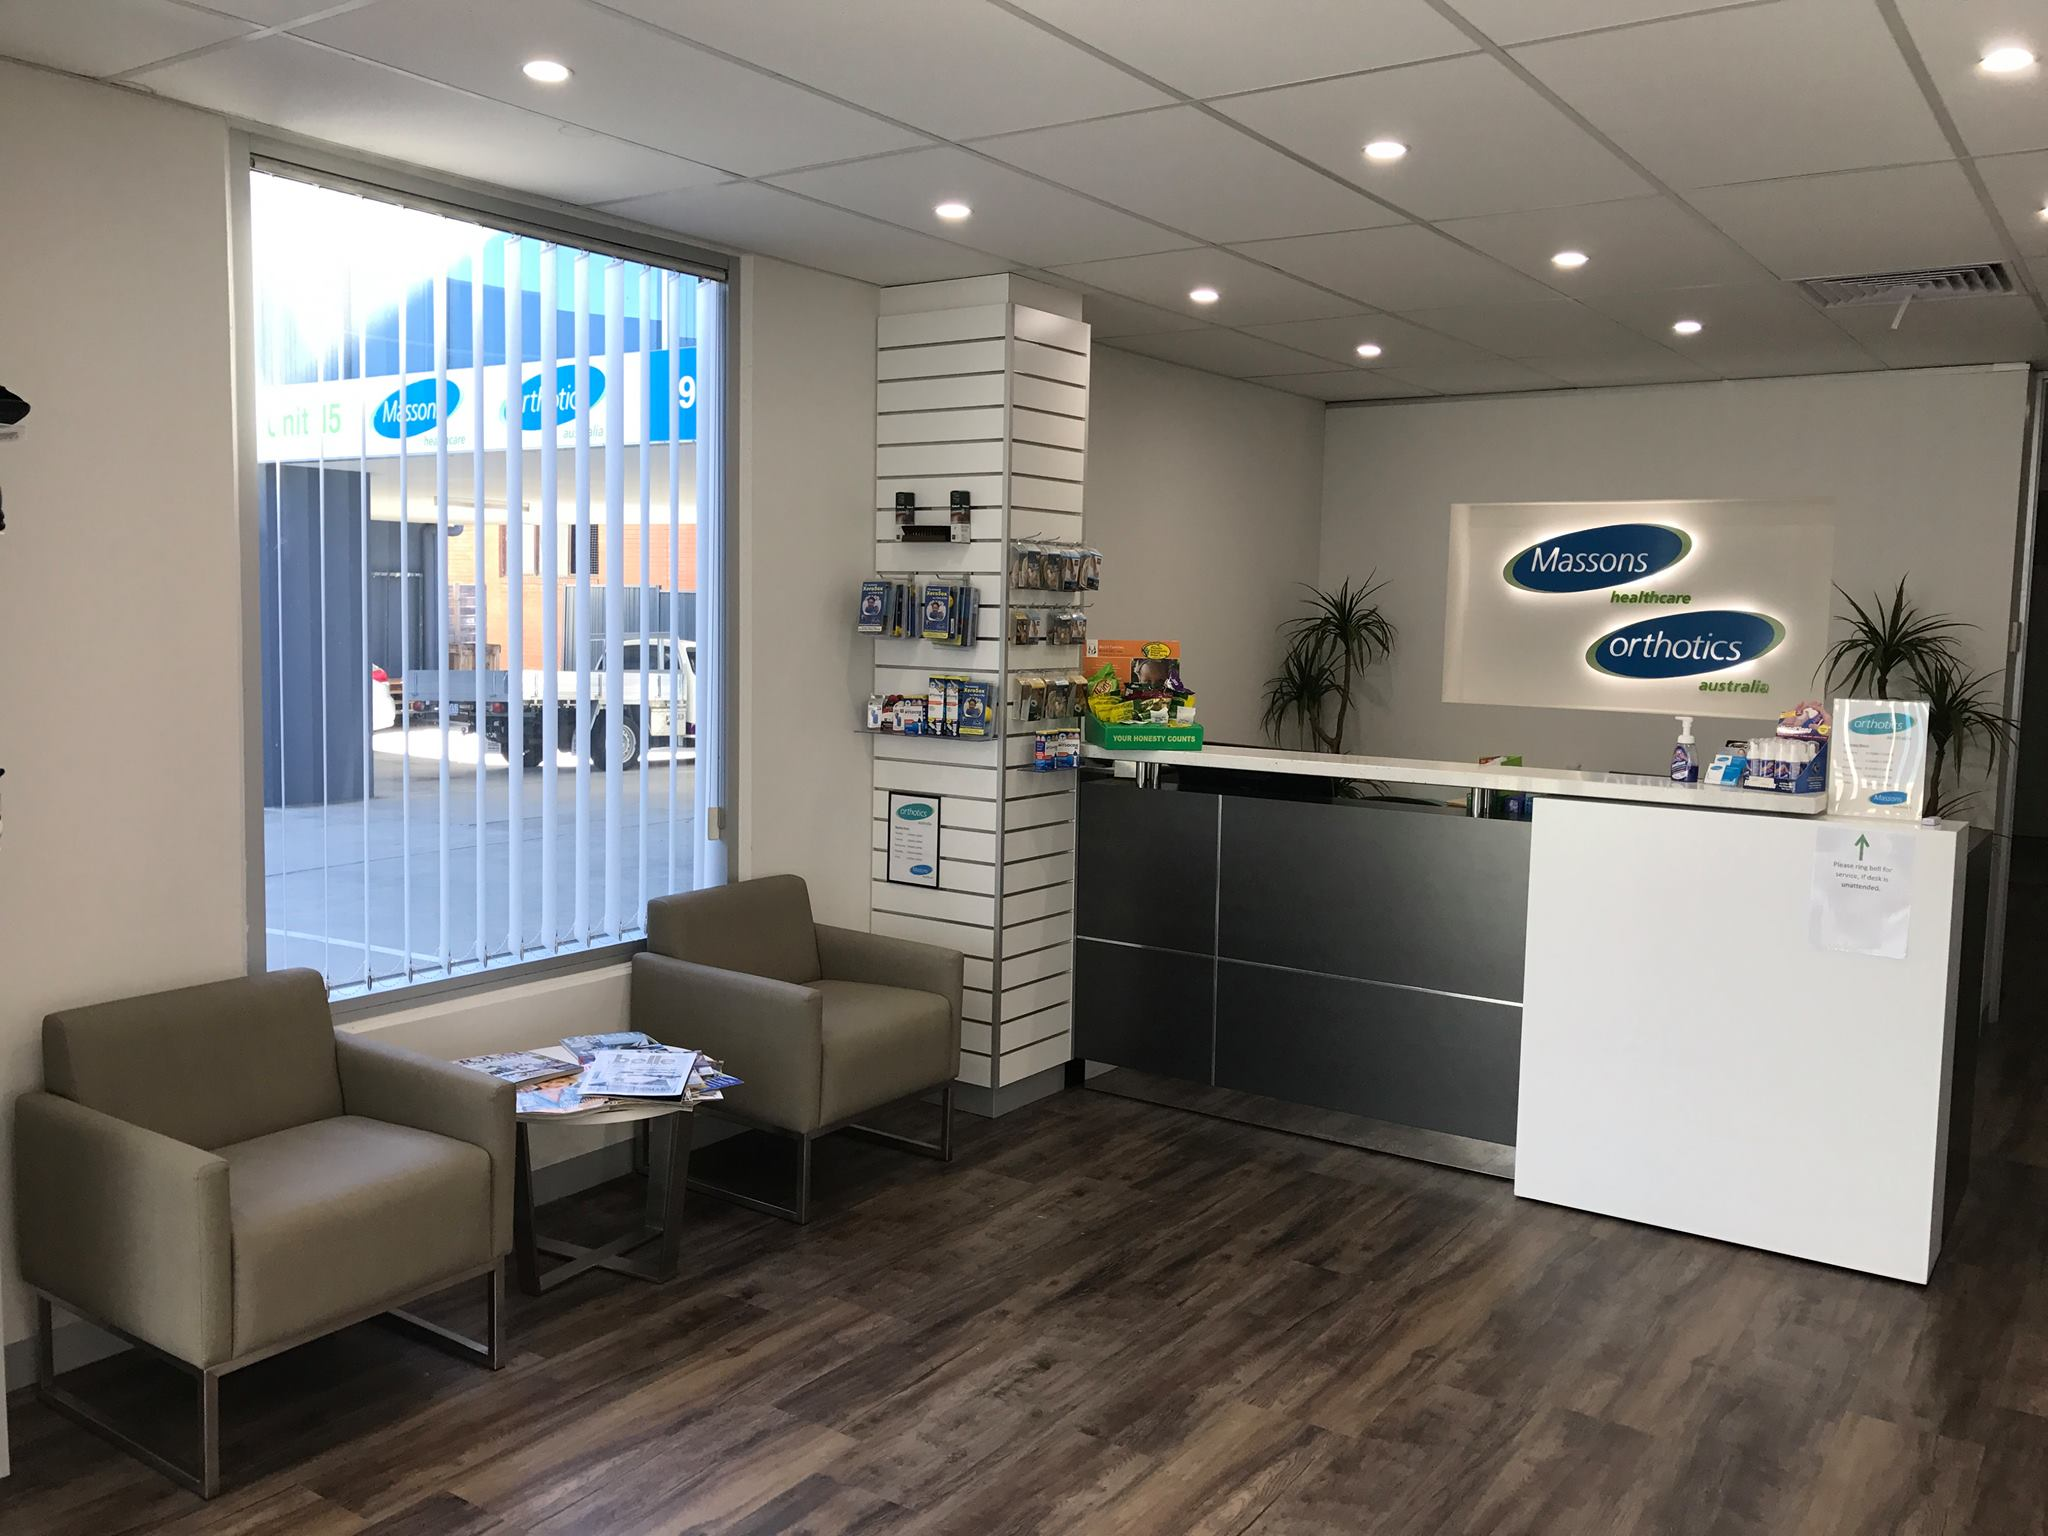 Massons Healthcare Knoxfield Clinic